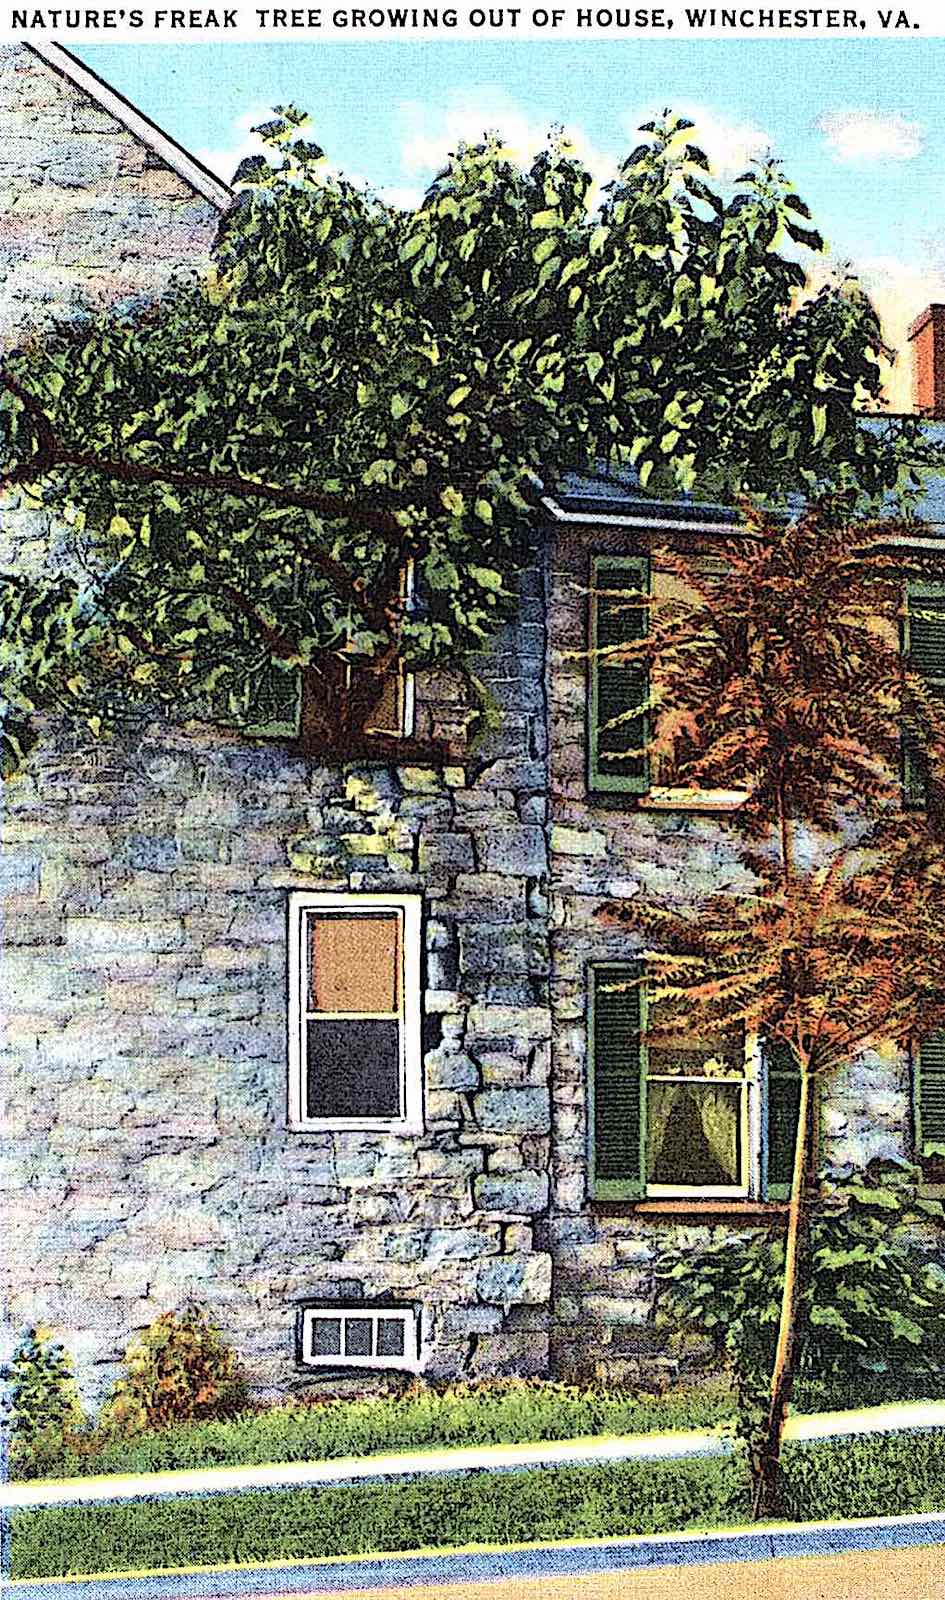 a post card of a tree growing out of a house, Winchester Vermont USA